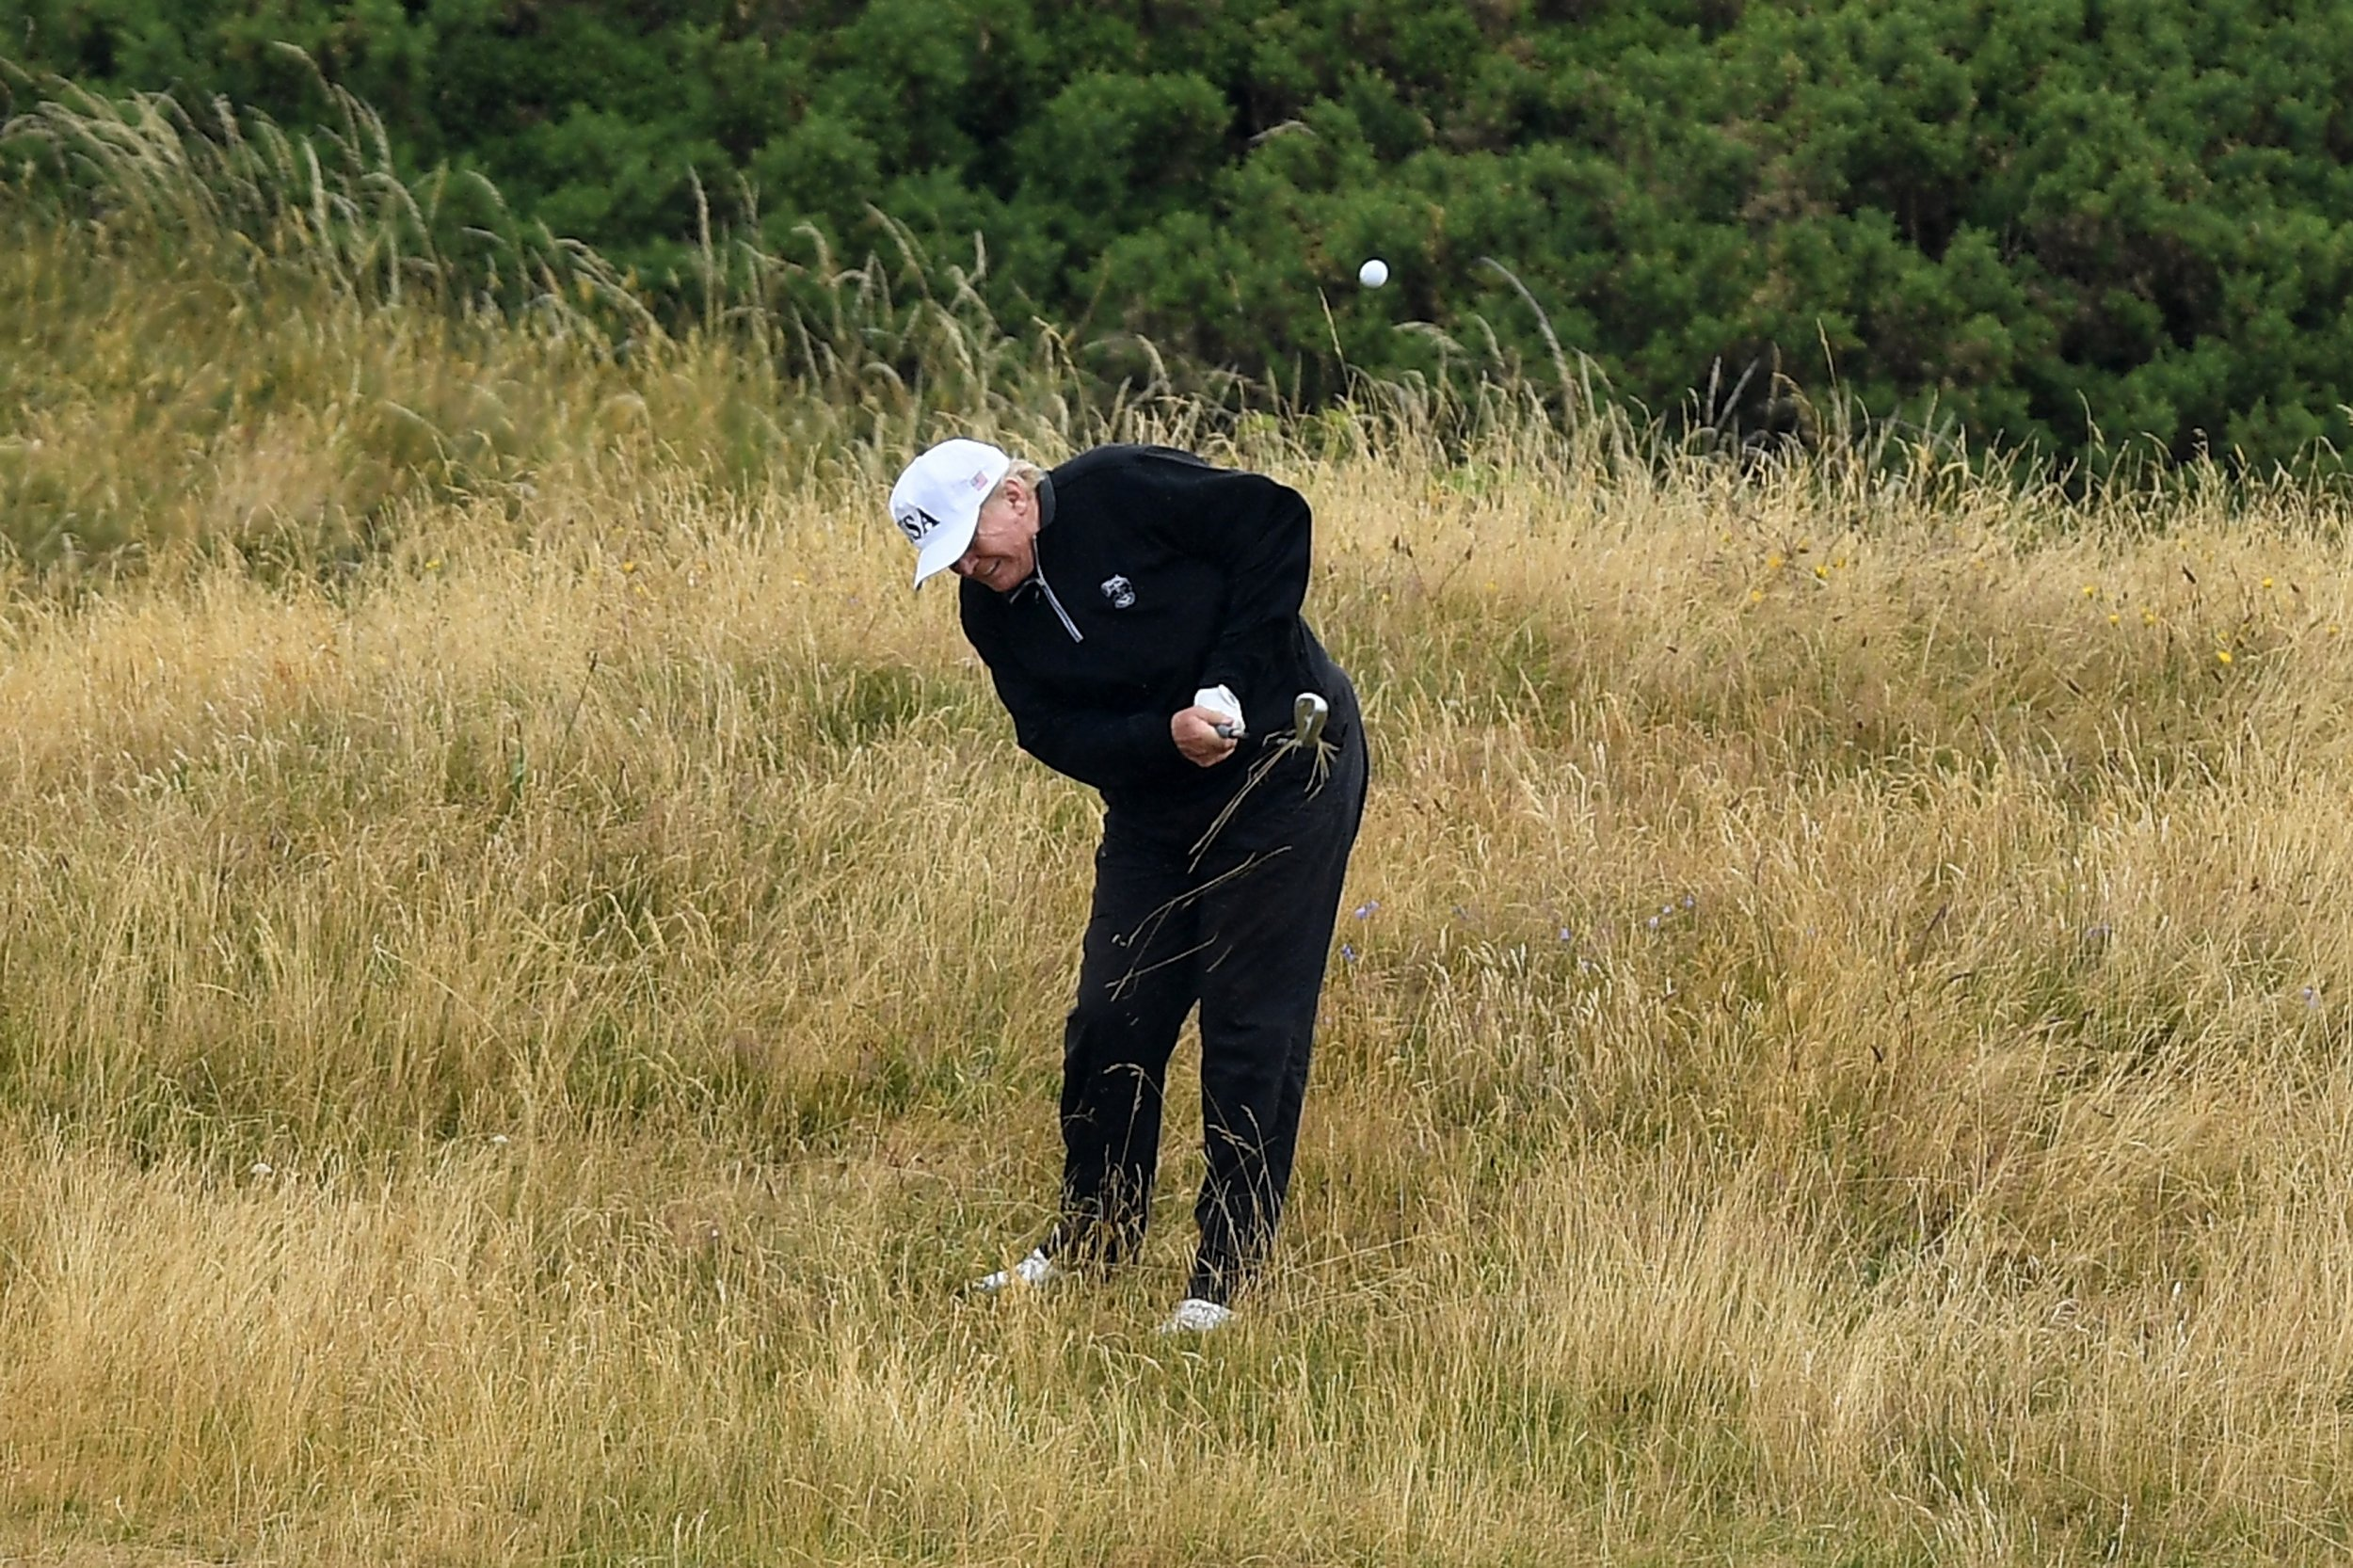 obama plays golf instead of attending funeral